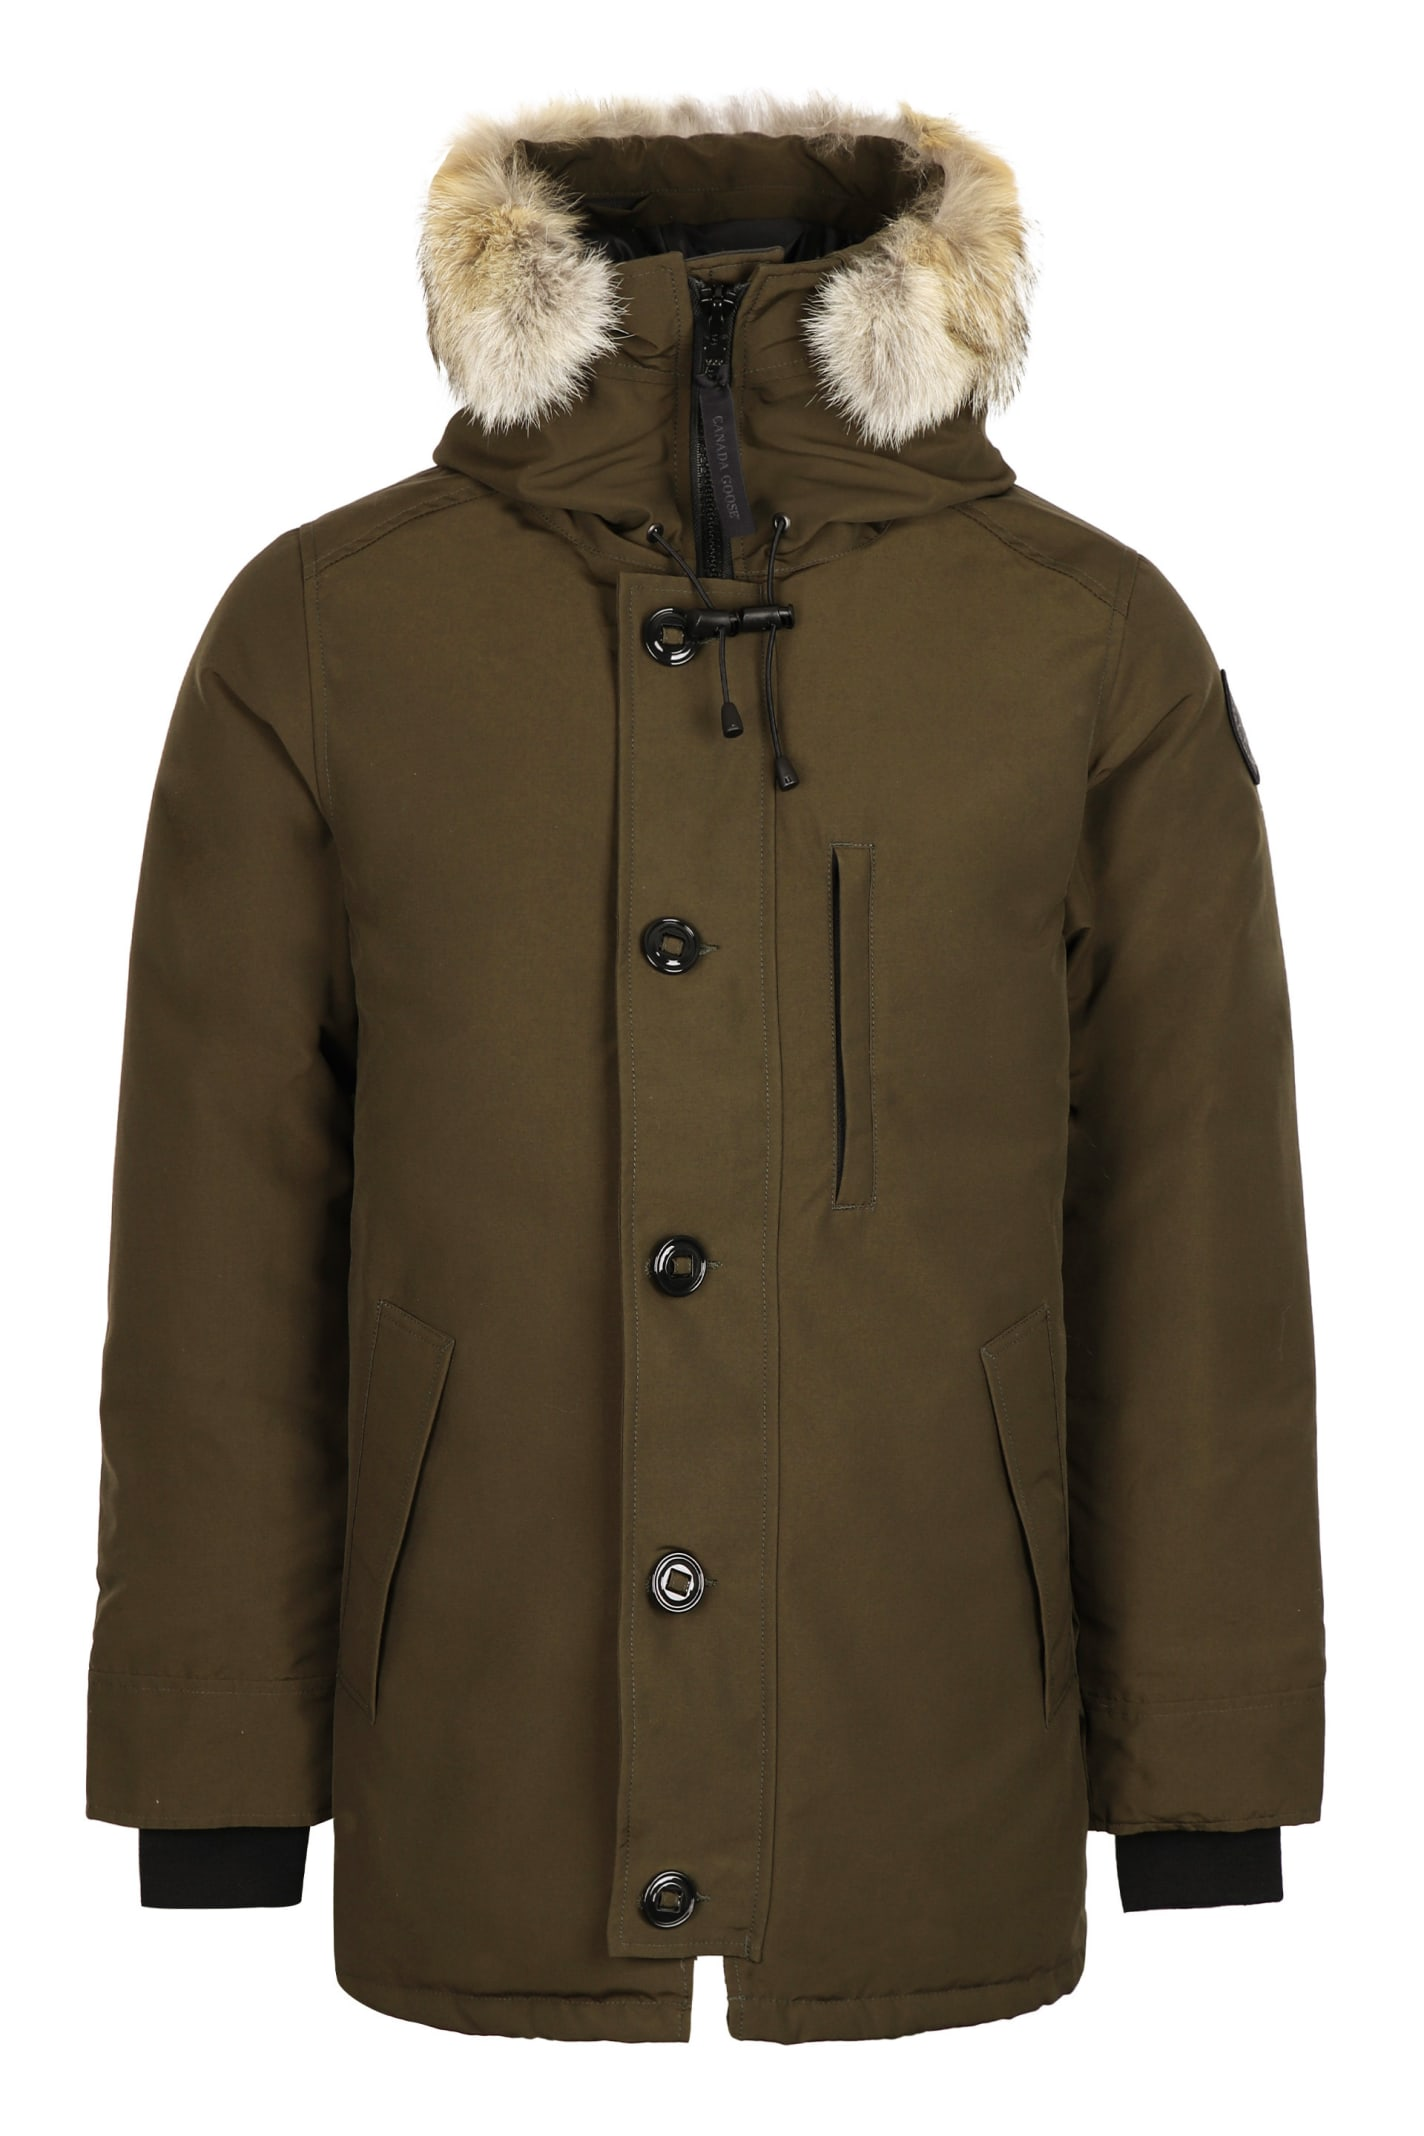 Canada Goose Chateau Hooded Parka - Black Label